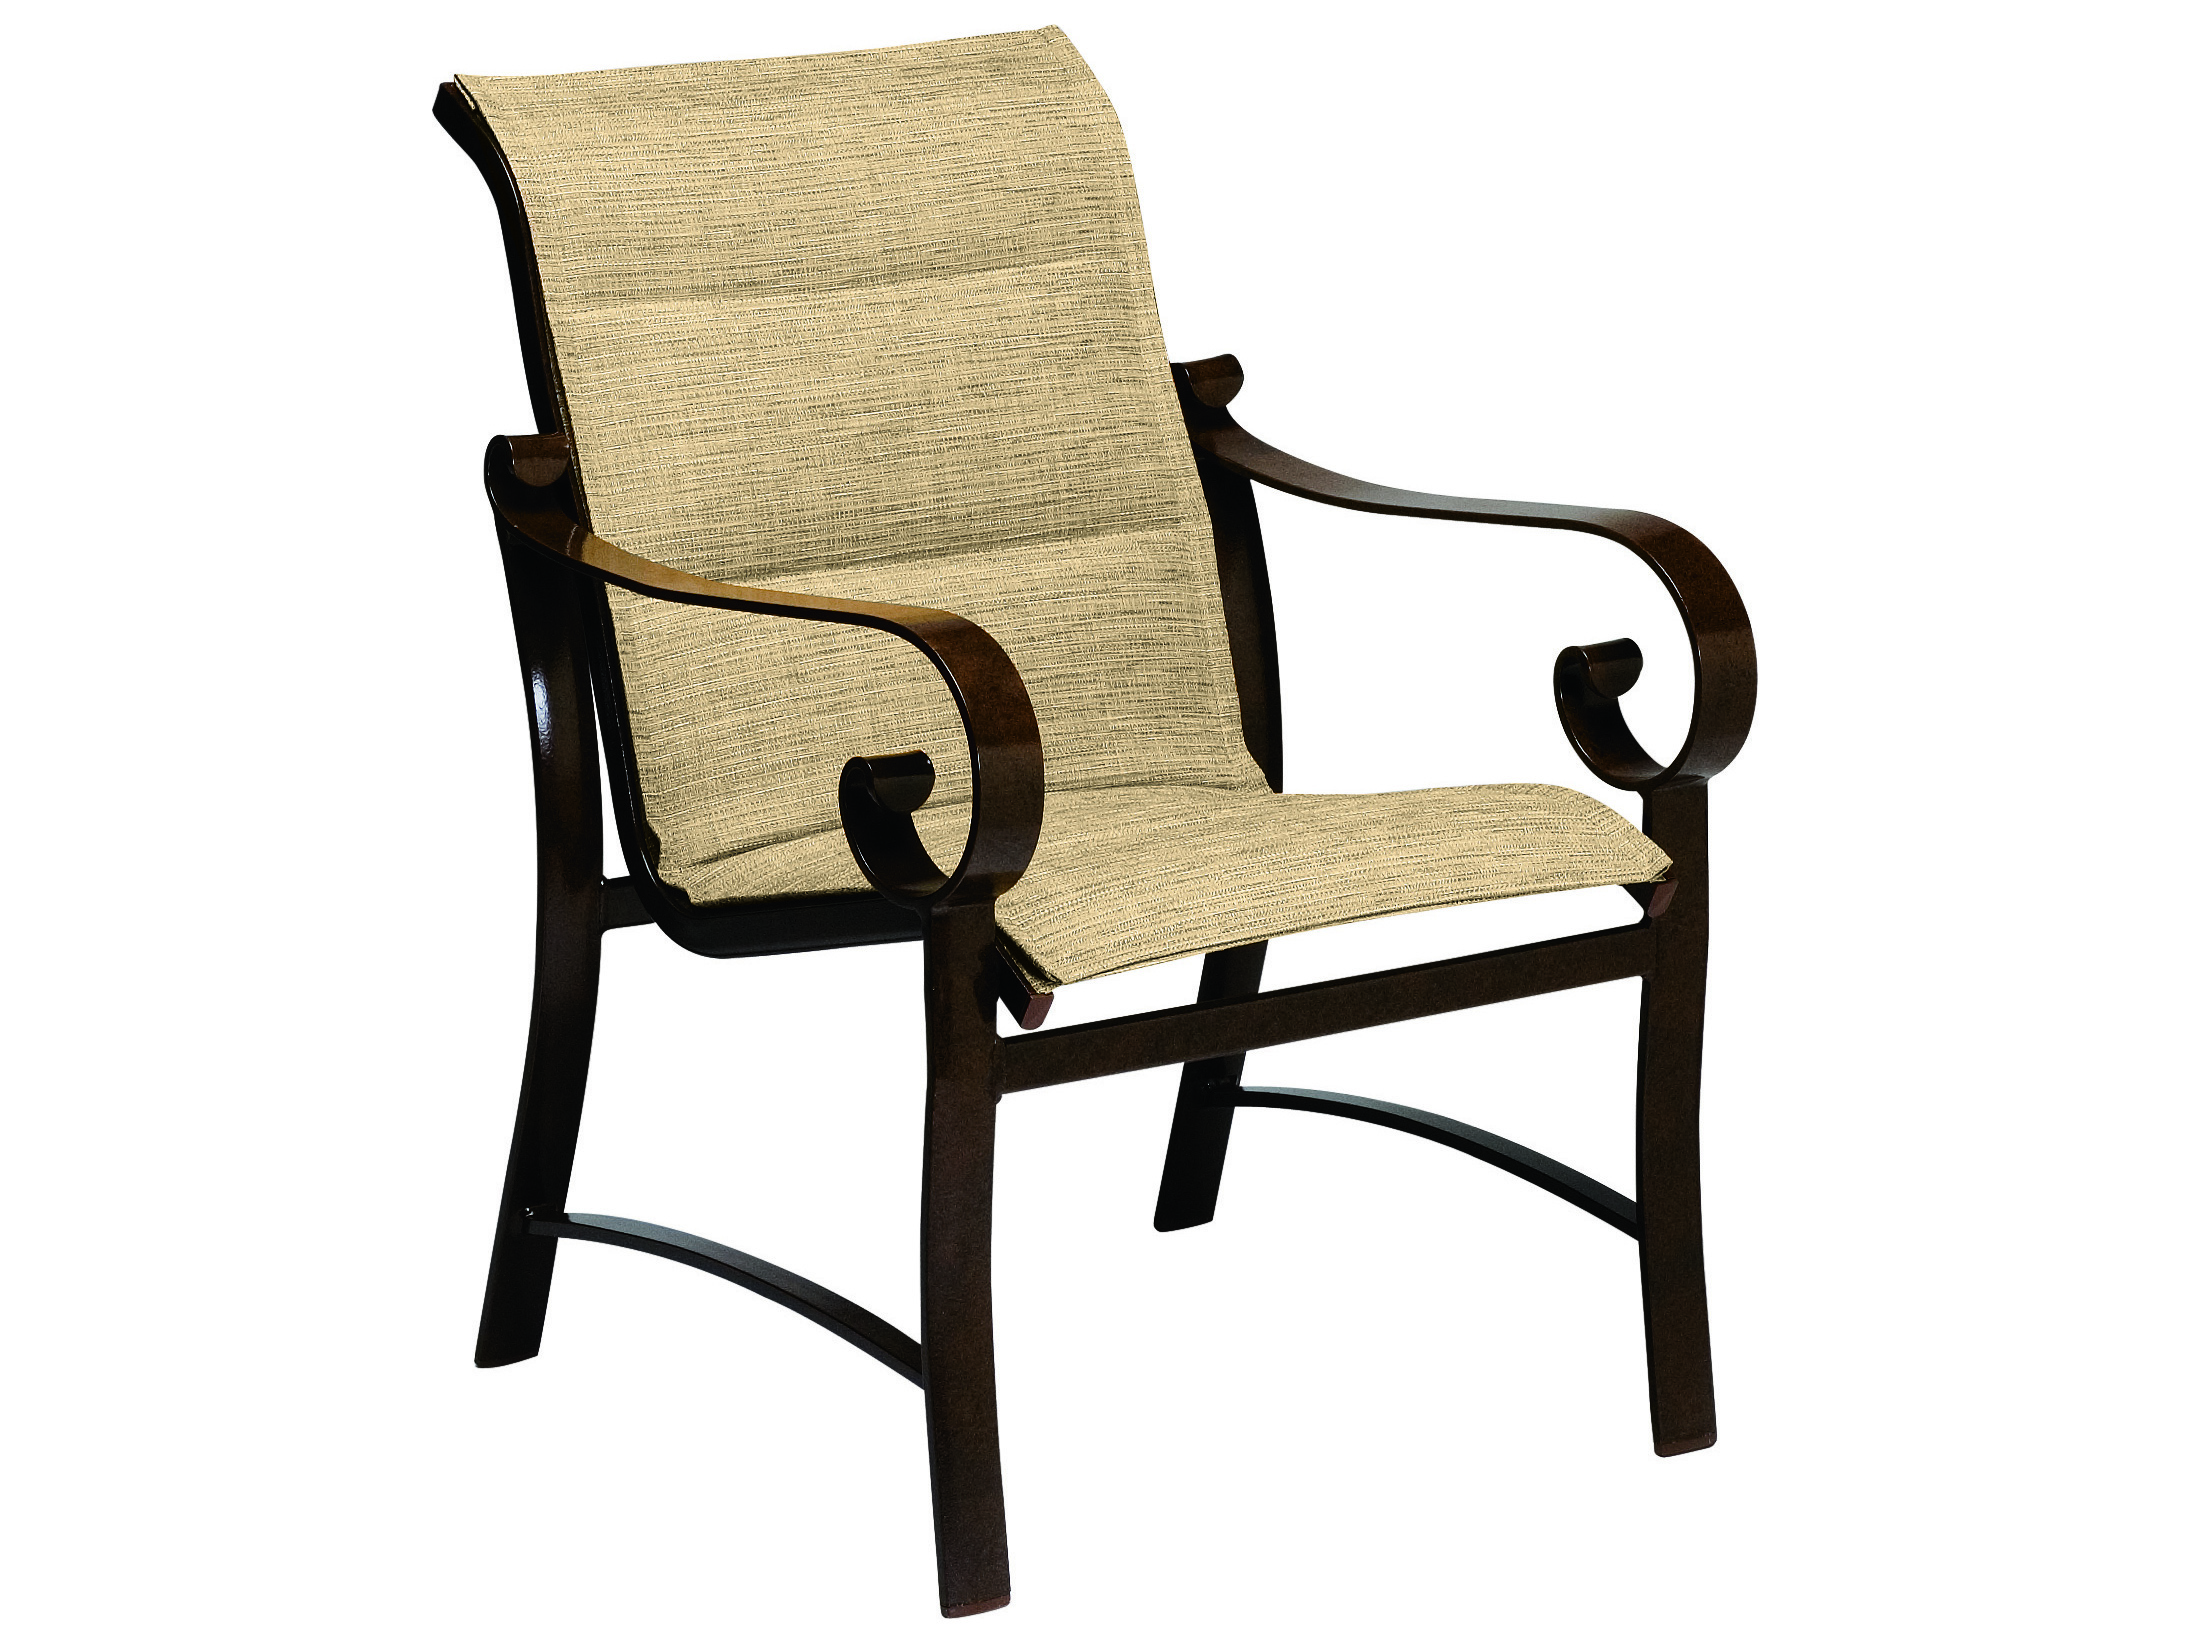 Woodard Belden Padded Sling Aluminum Dining Chair 62h501